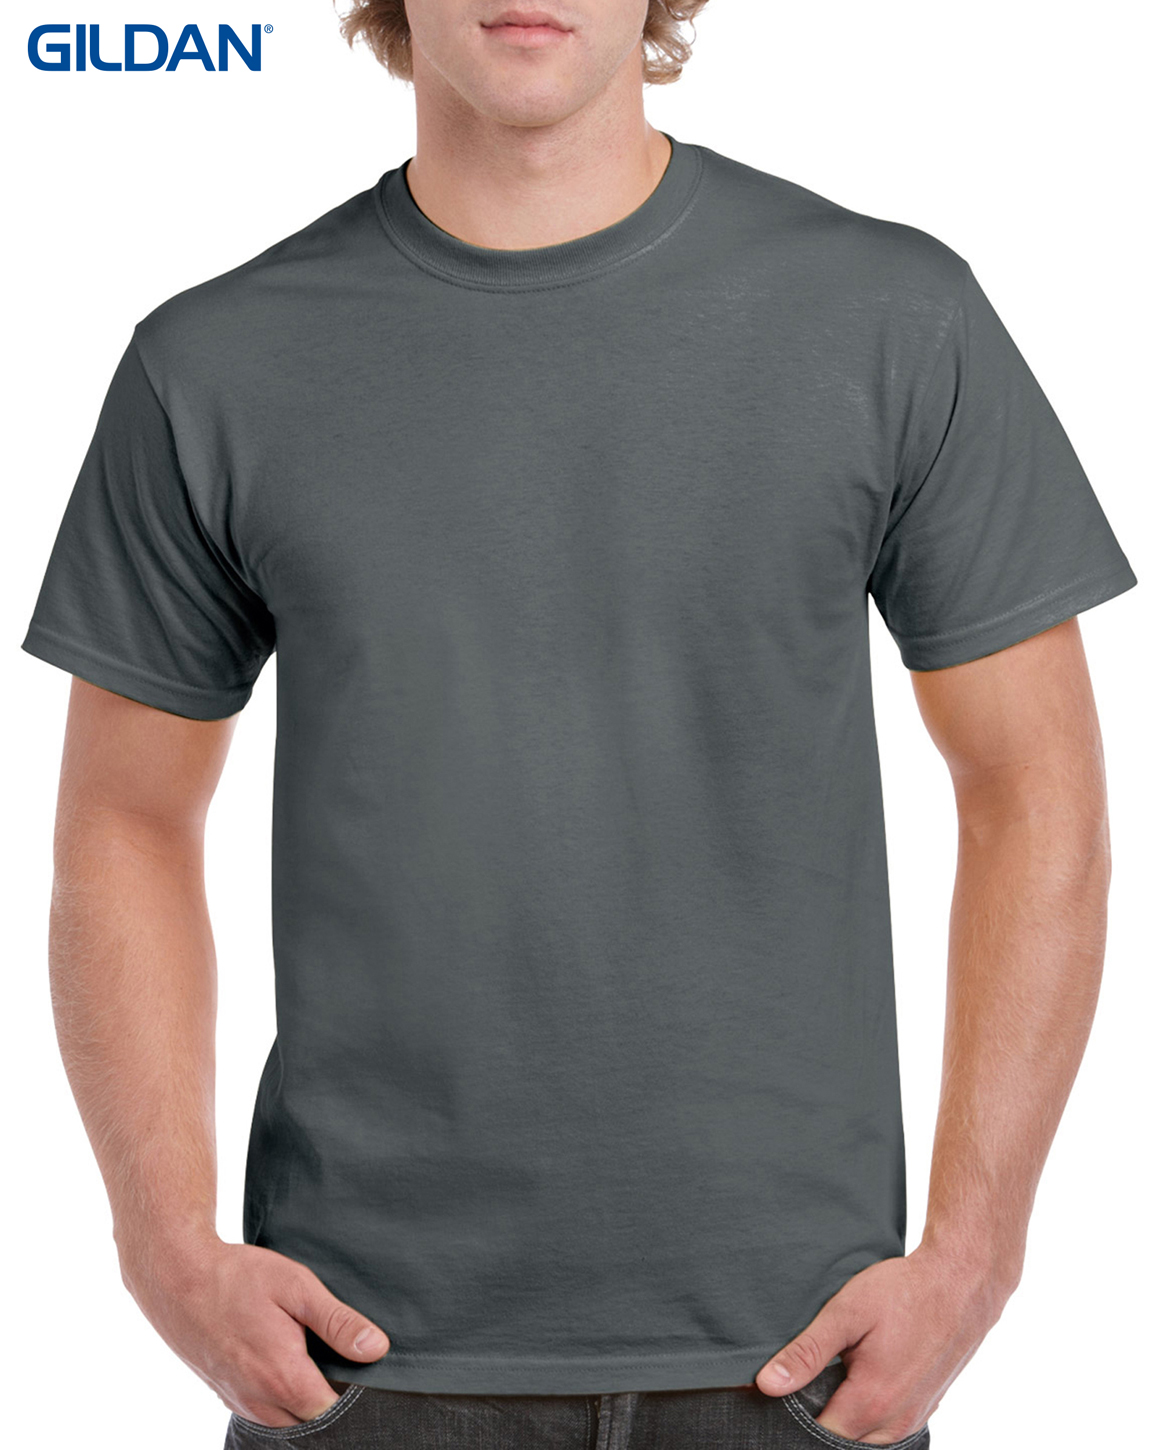 T shirts gildan mens 180gm 100 cotton cn t shirt g5000 for Gildan t shirts online